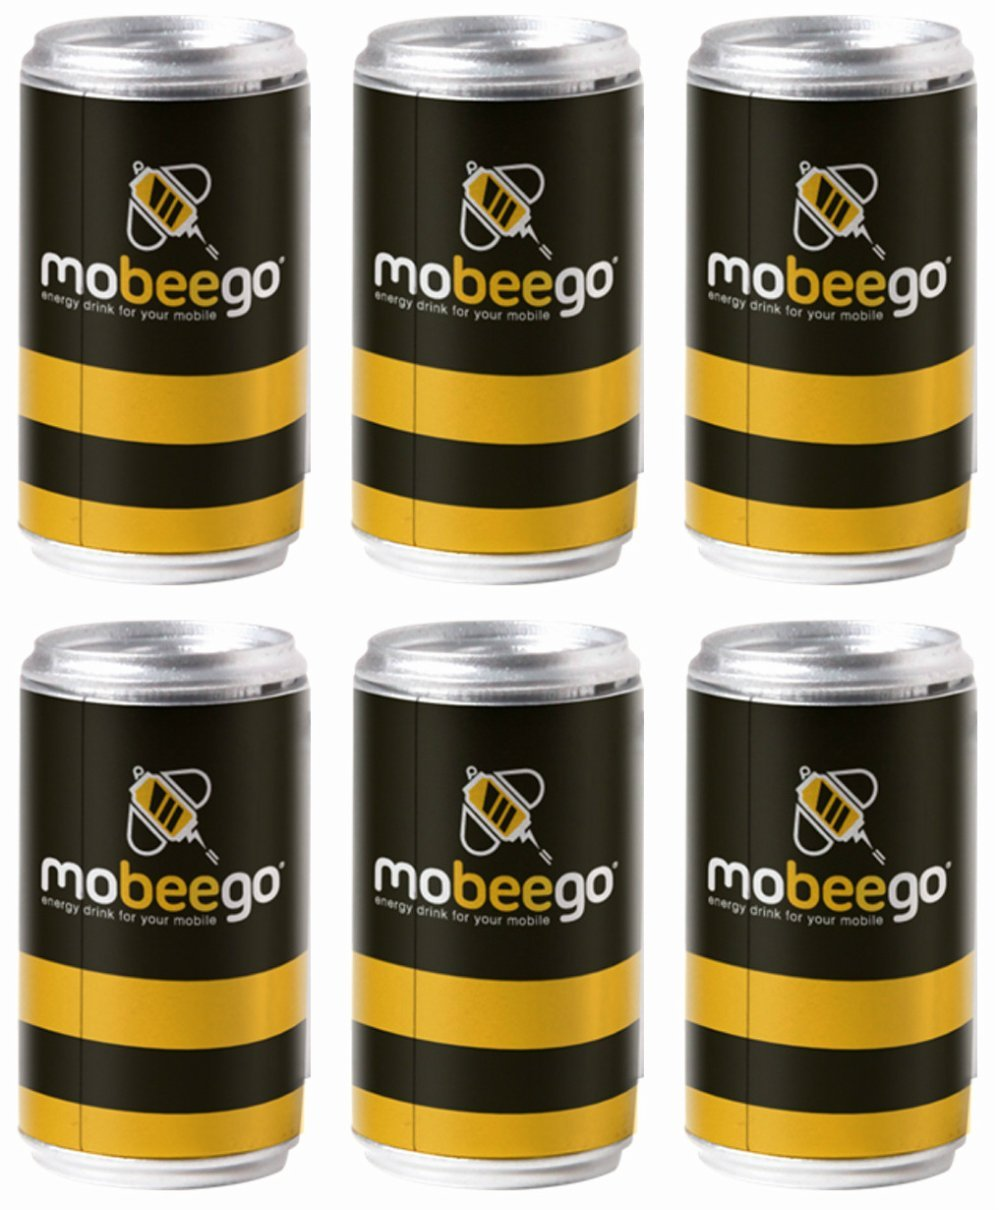 Mobeego Refill Can - Replacement Disposable Battery For the Mobeego iPhone or Android Adaptor - Pack of 6